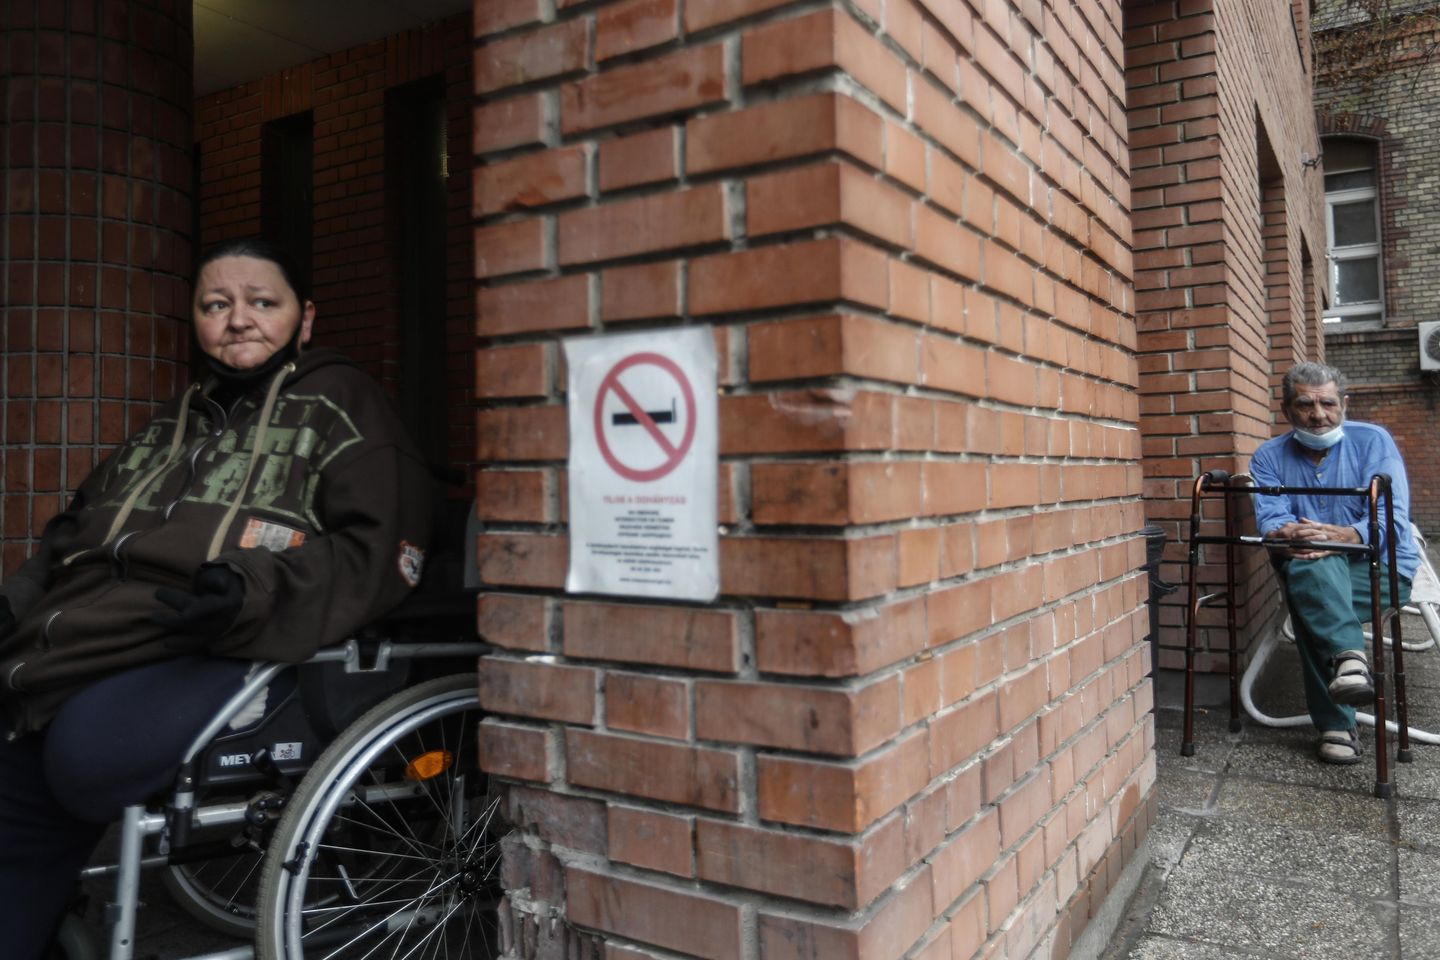 Hungary's government spars with mayor over homeless hospital